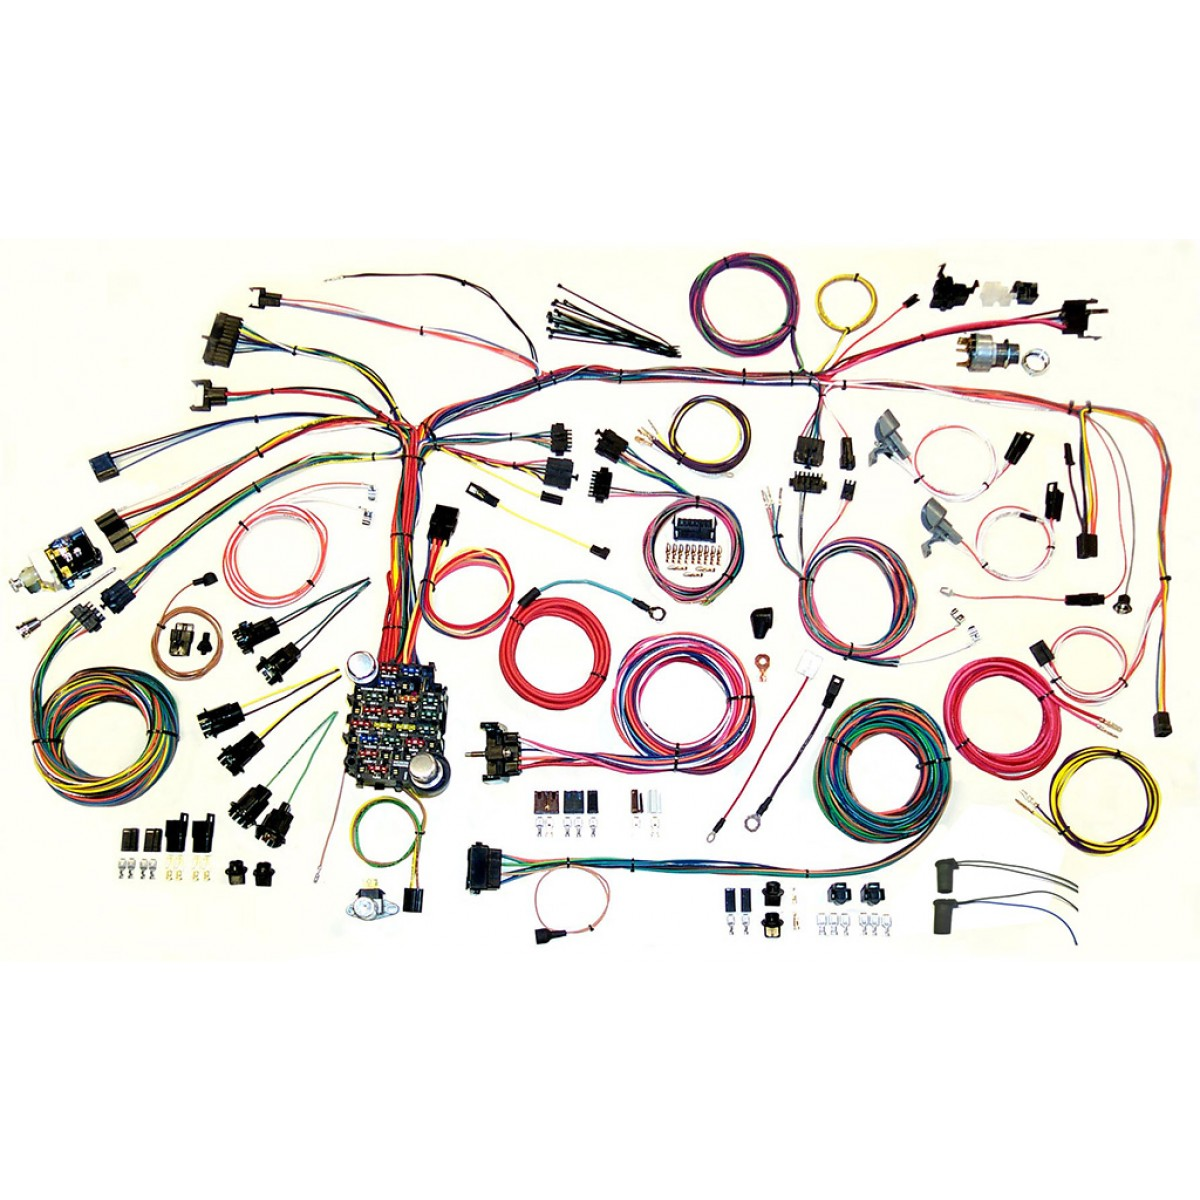 firebird wire harness complete wiring harness kit 1967 1968 firebird part 500886 1967 1968 pontiac firbird complete wiring harness kit 1967 1967 firebird wiring harness at gsmx.co